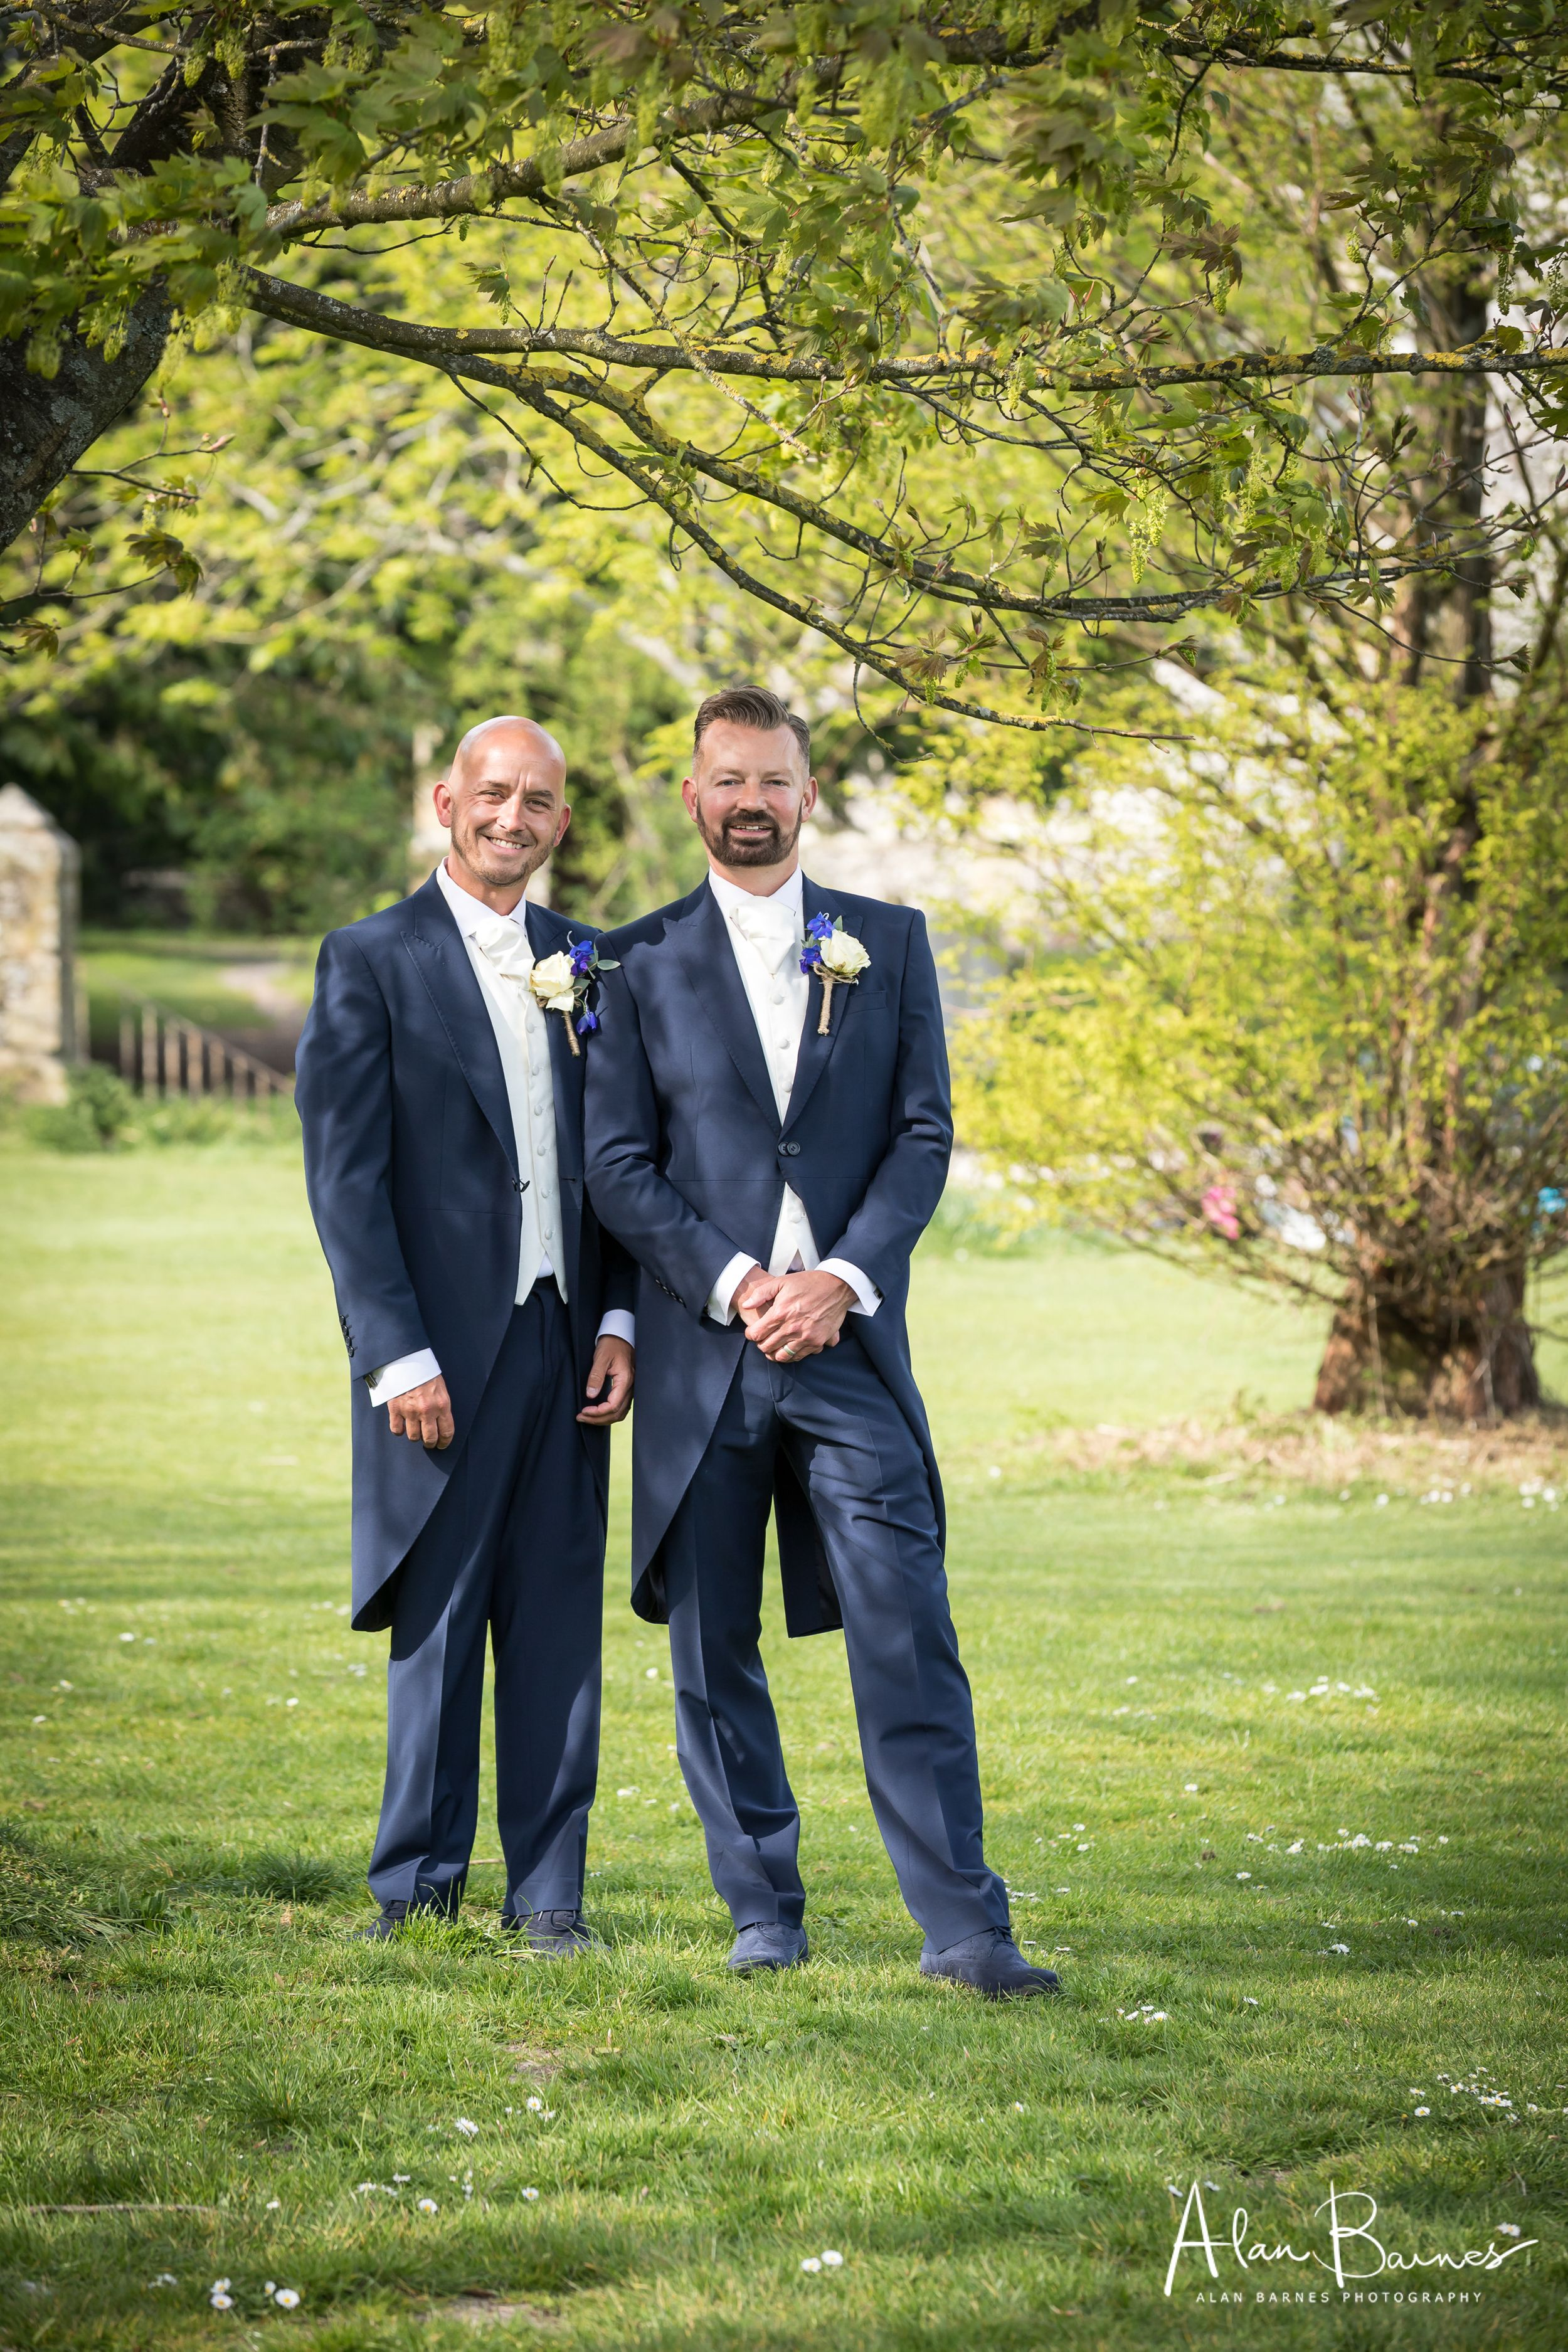 Phil and Paul wedding portrait